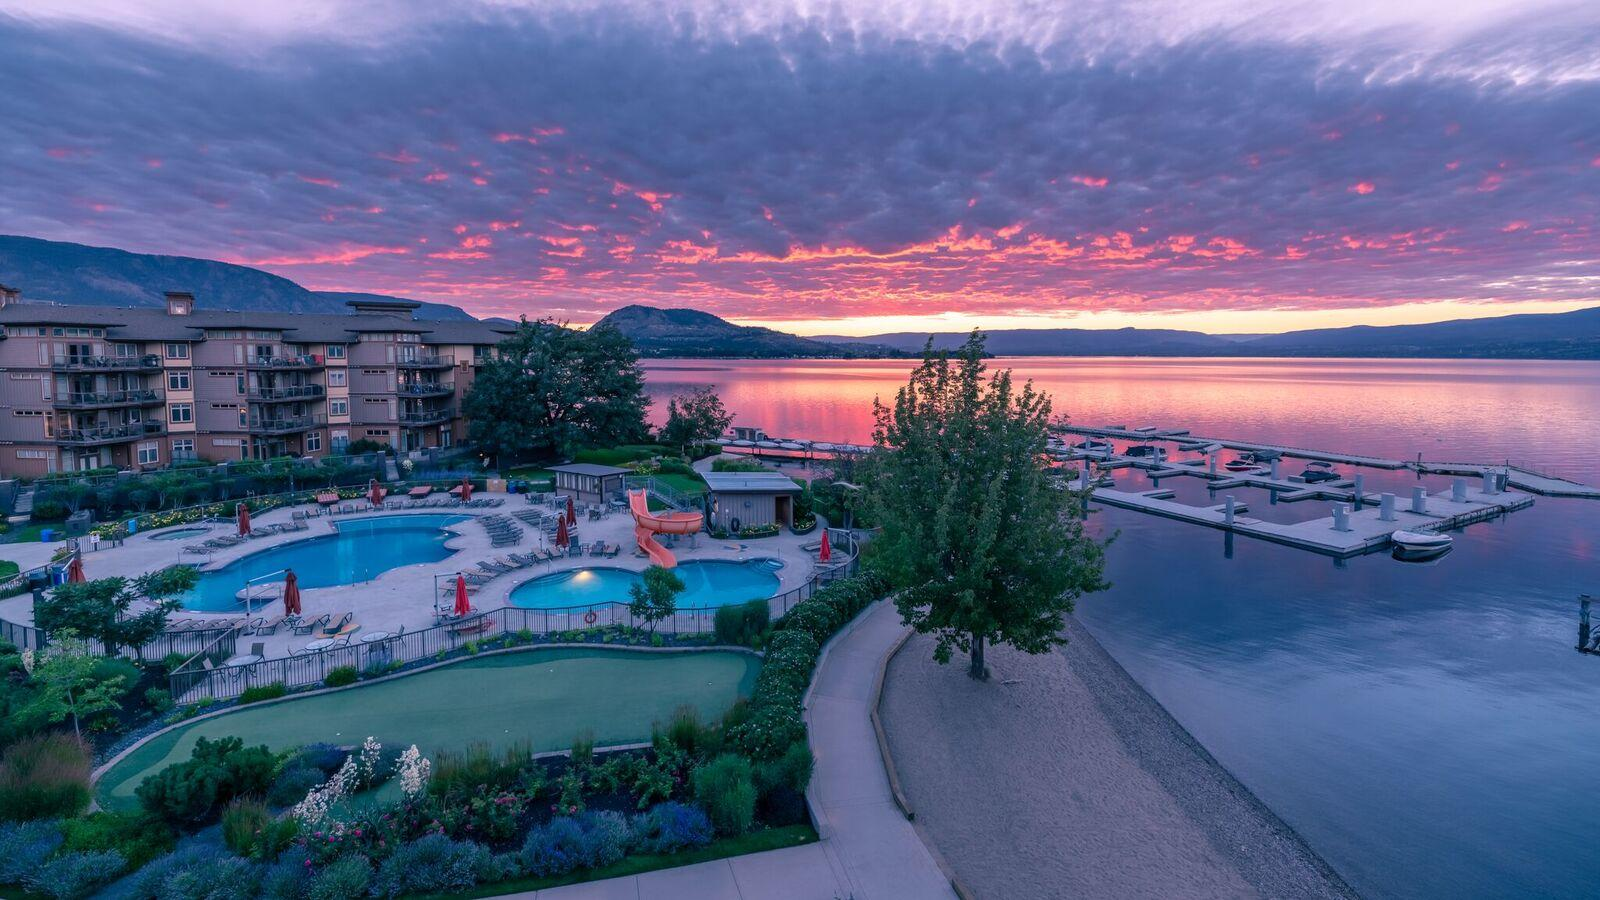 Aerial view of Cove Resort and Kelowna Lakefront at sunset